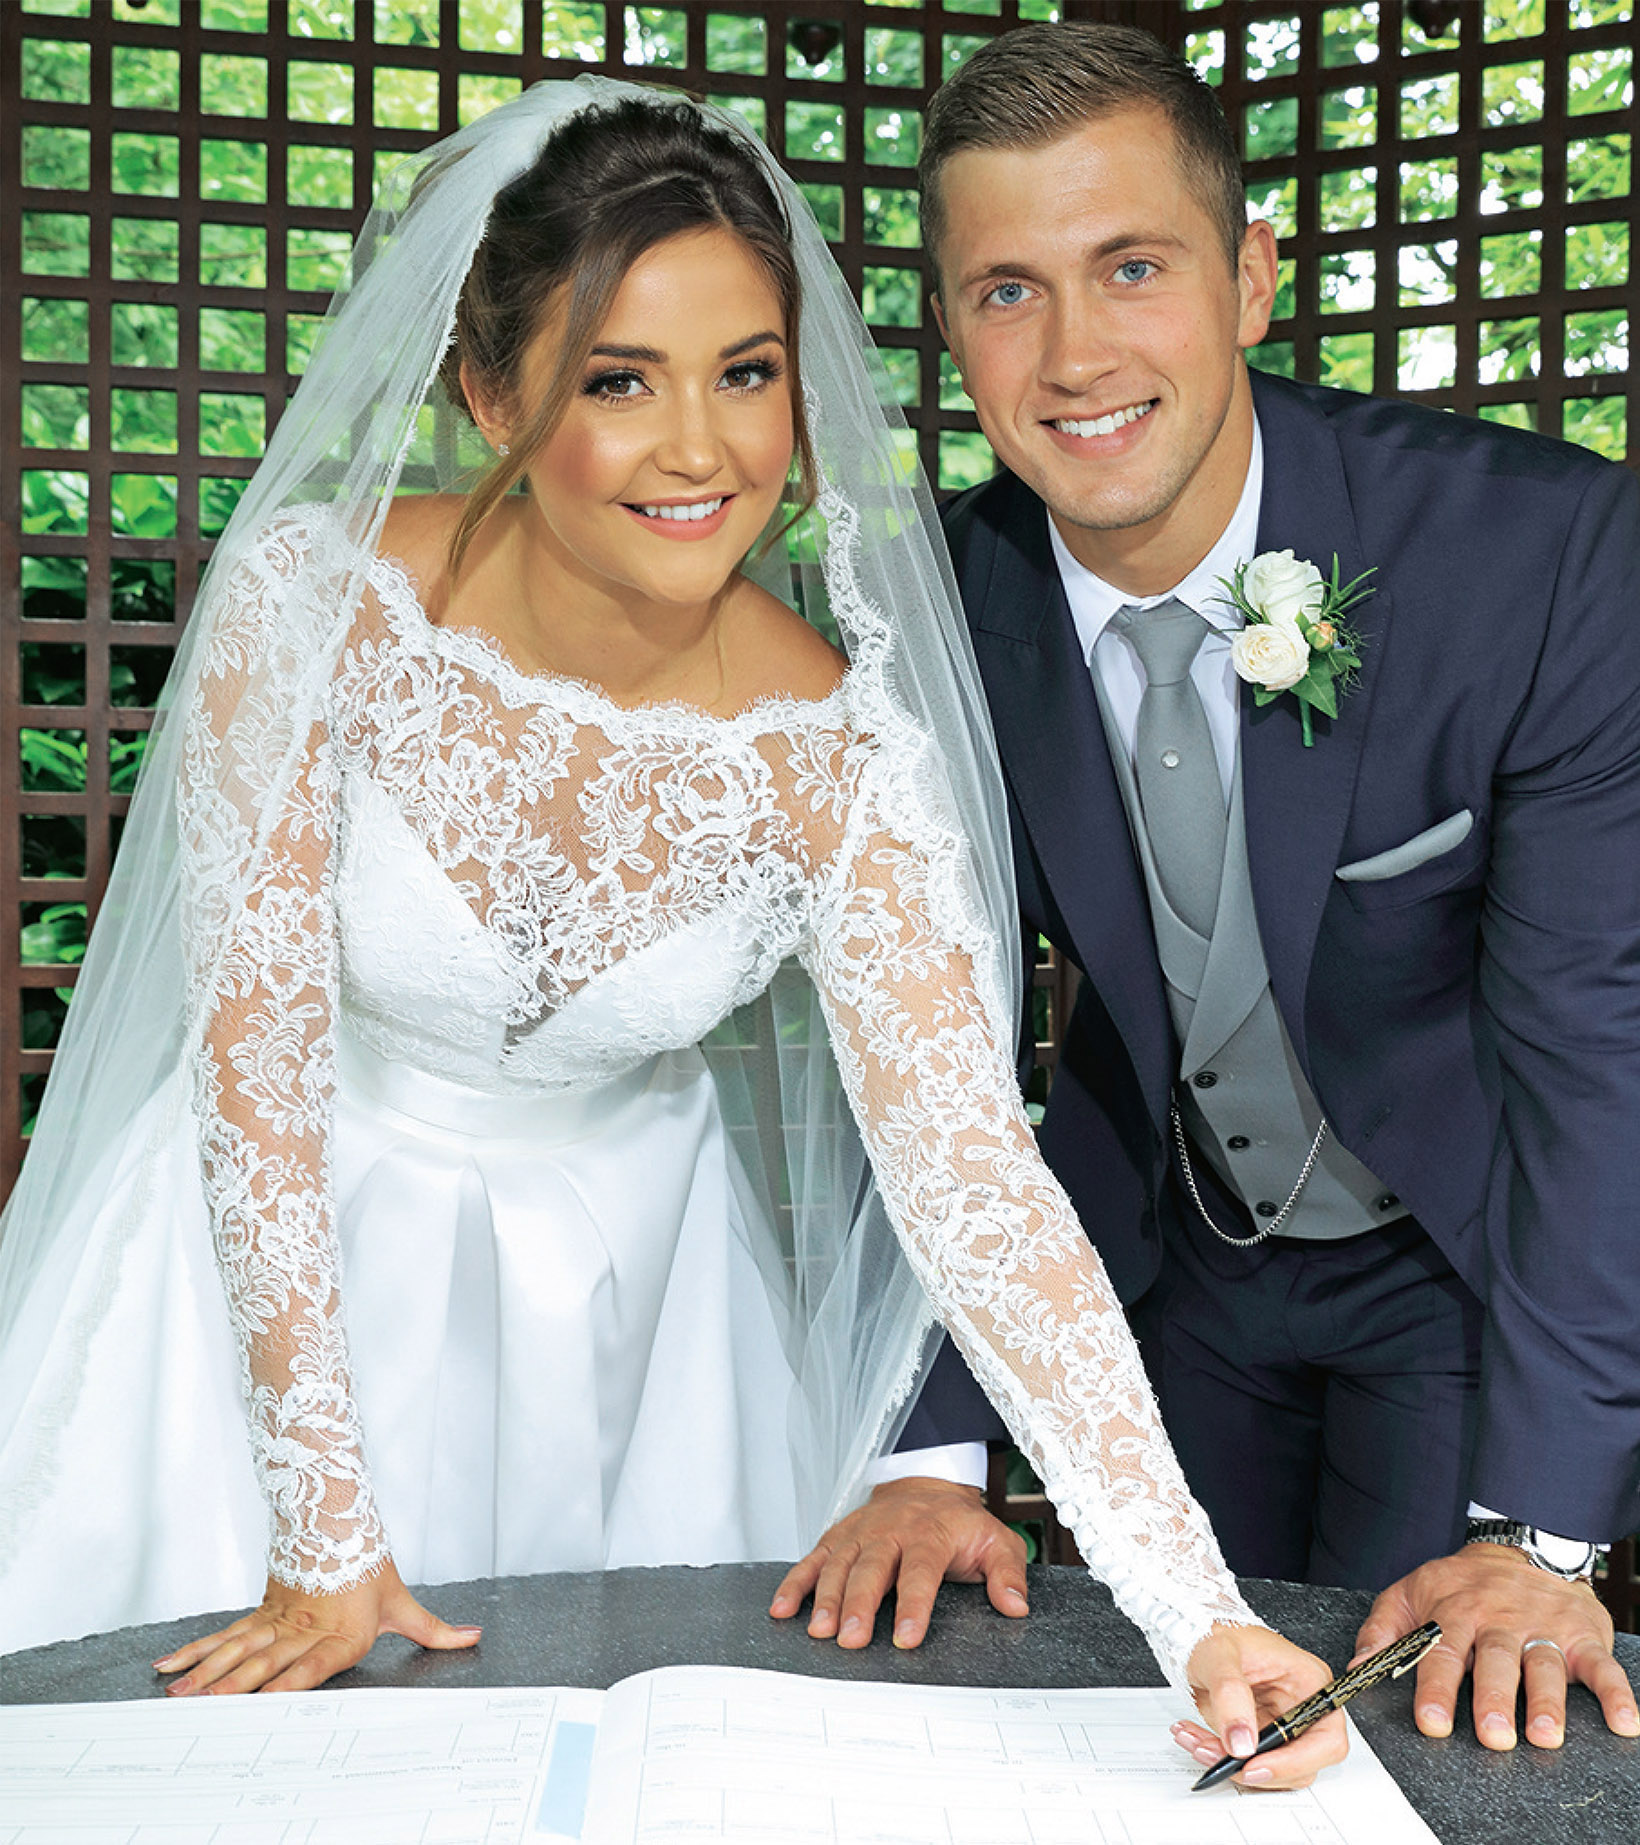 Chesire Brides - Jaqueline Joss wedding to Dan Osborne in bridal wear by Suzanne Neville